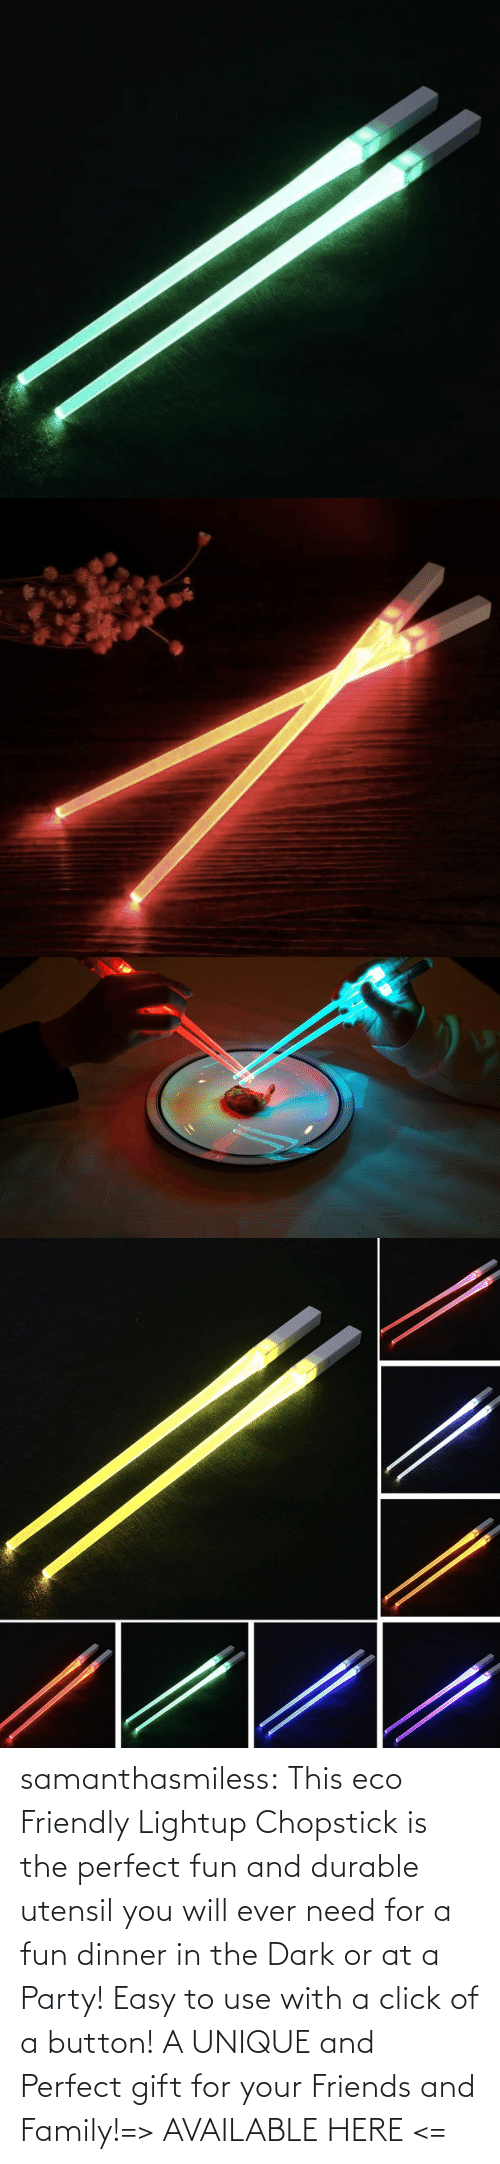 perfect: samanthasmiless:  This eco Friendly Lightup Chopstick is the perfect fun and durable utensil you will ever need for a fun dinner in the Dark or at a Party! Easy to use with a click of a button! A UNIQUE and Perfect gift for your Friends and Family!=> AVAILABLE HERE <=